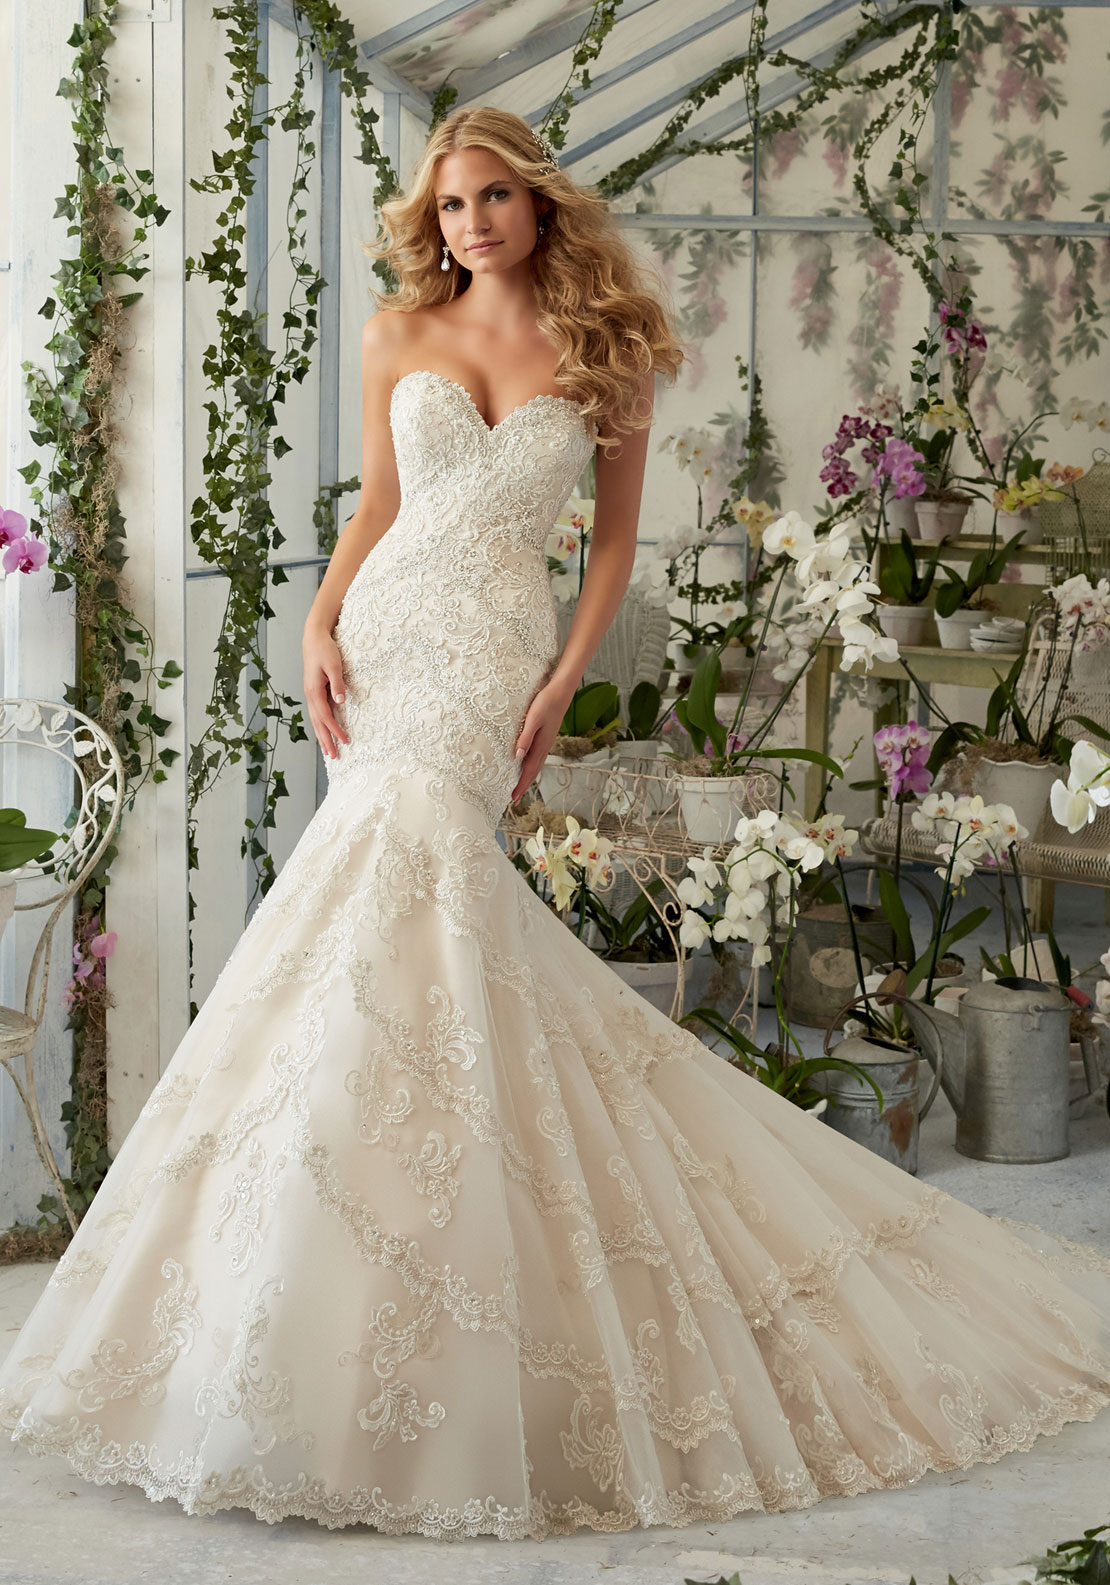 MORI LEE BRIDAL 10S LGD